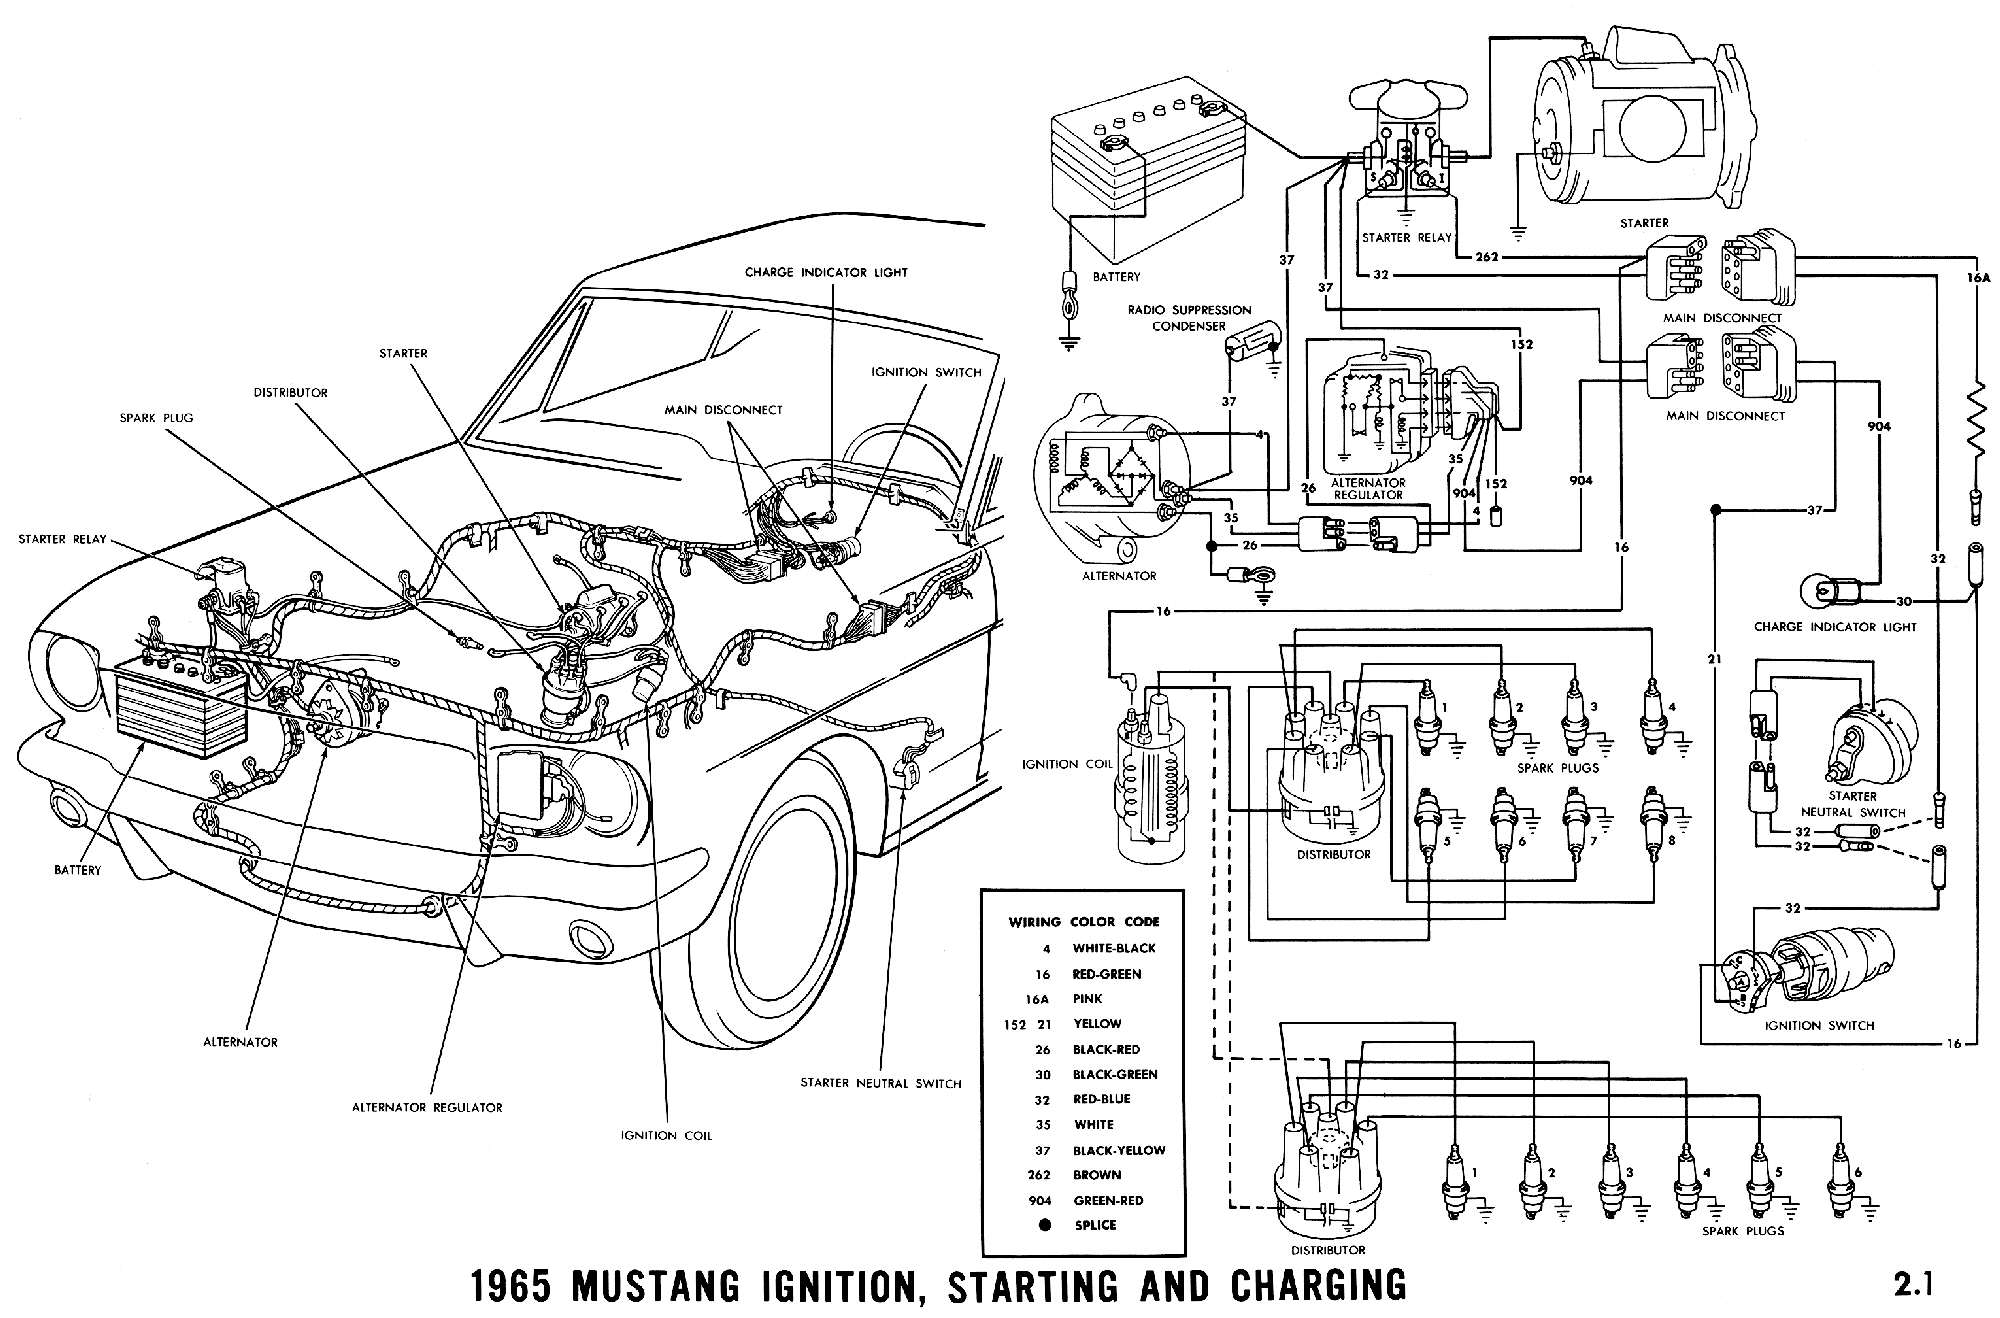 1965c 1965 mustang wiring diagrams average joe restoration 68 mustang wiring harness at reclaimingppi.co